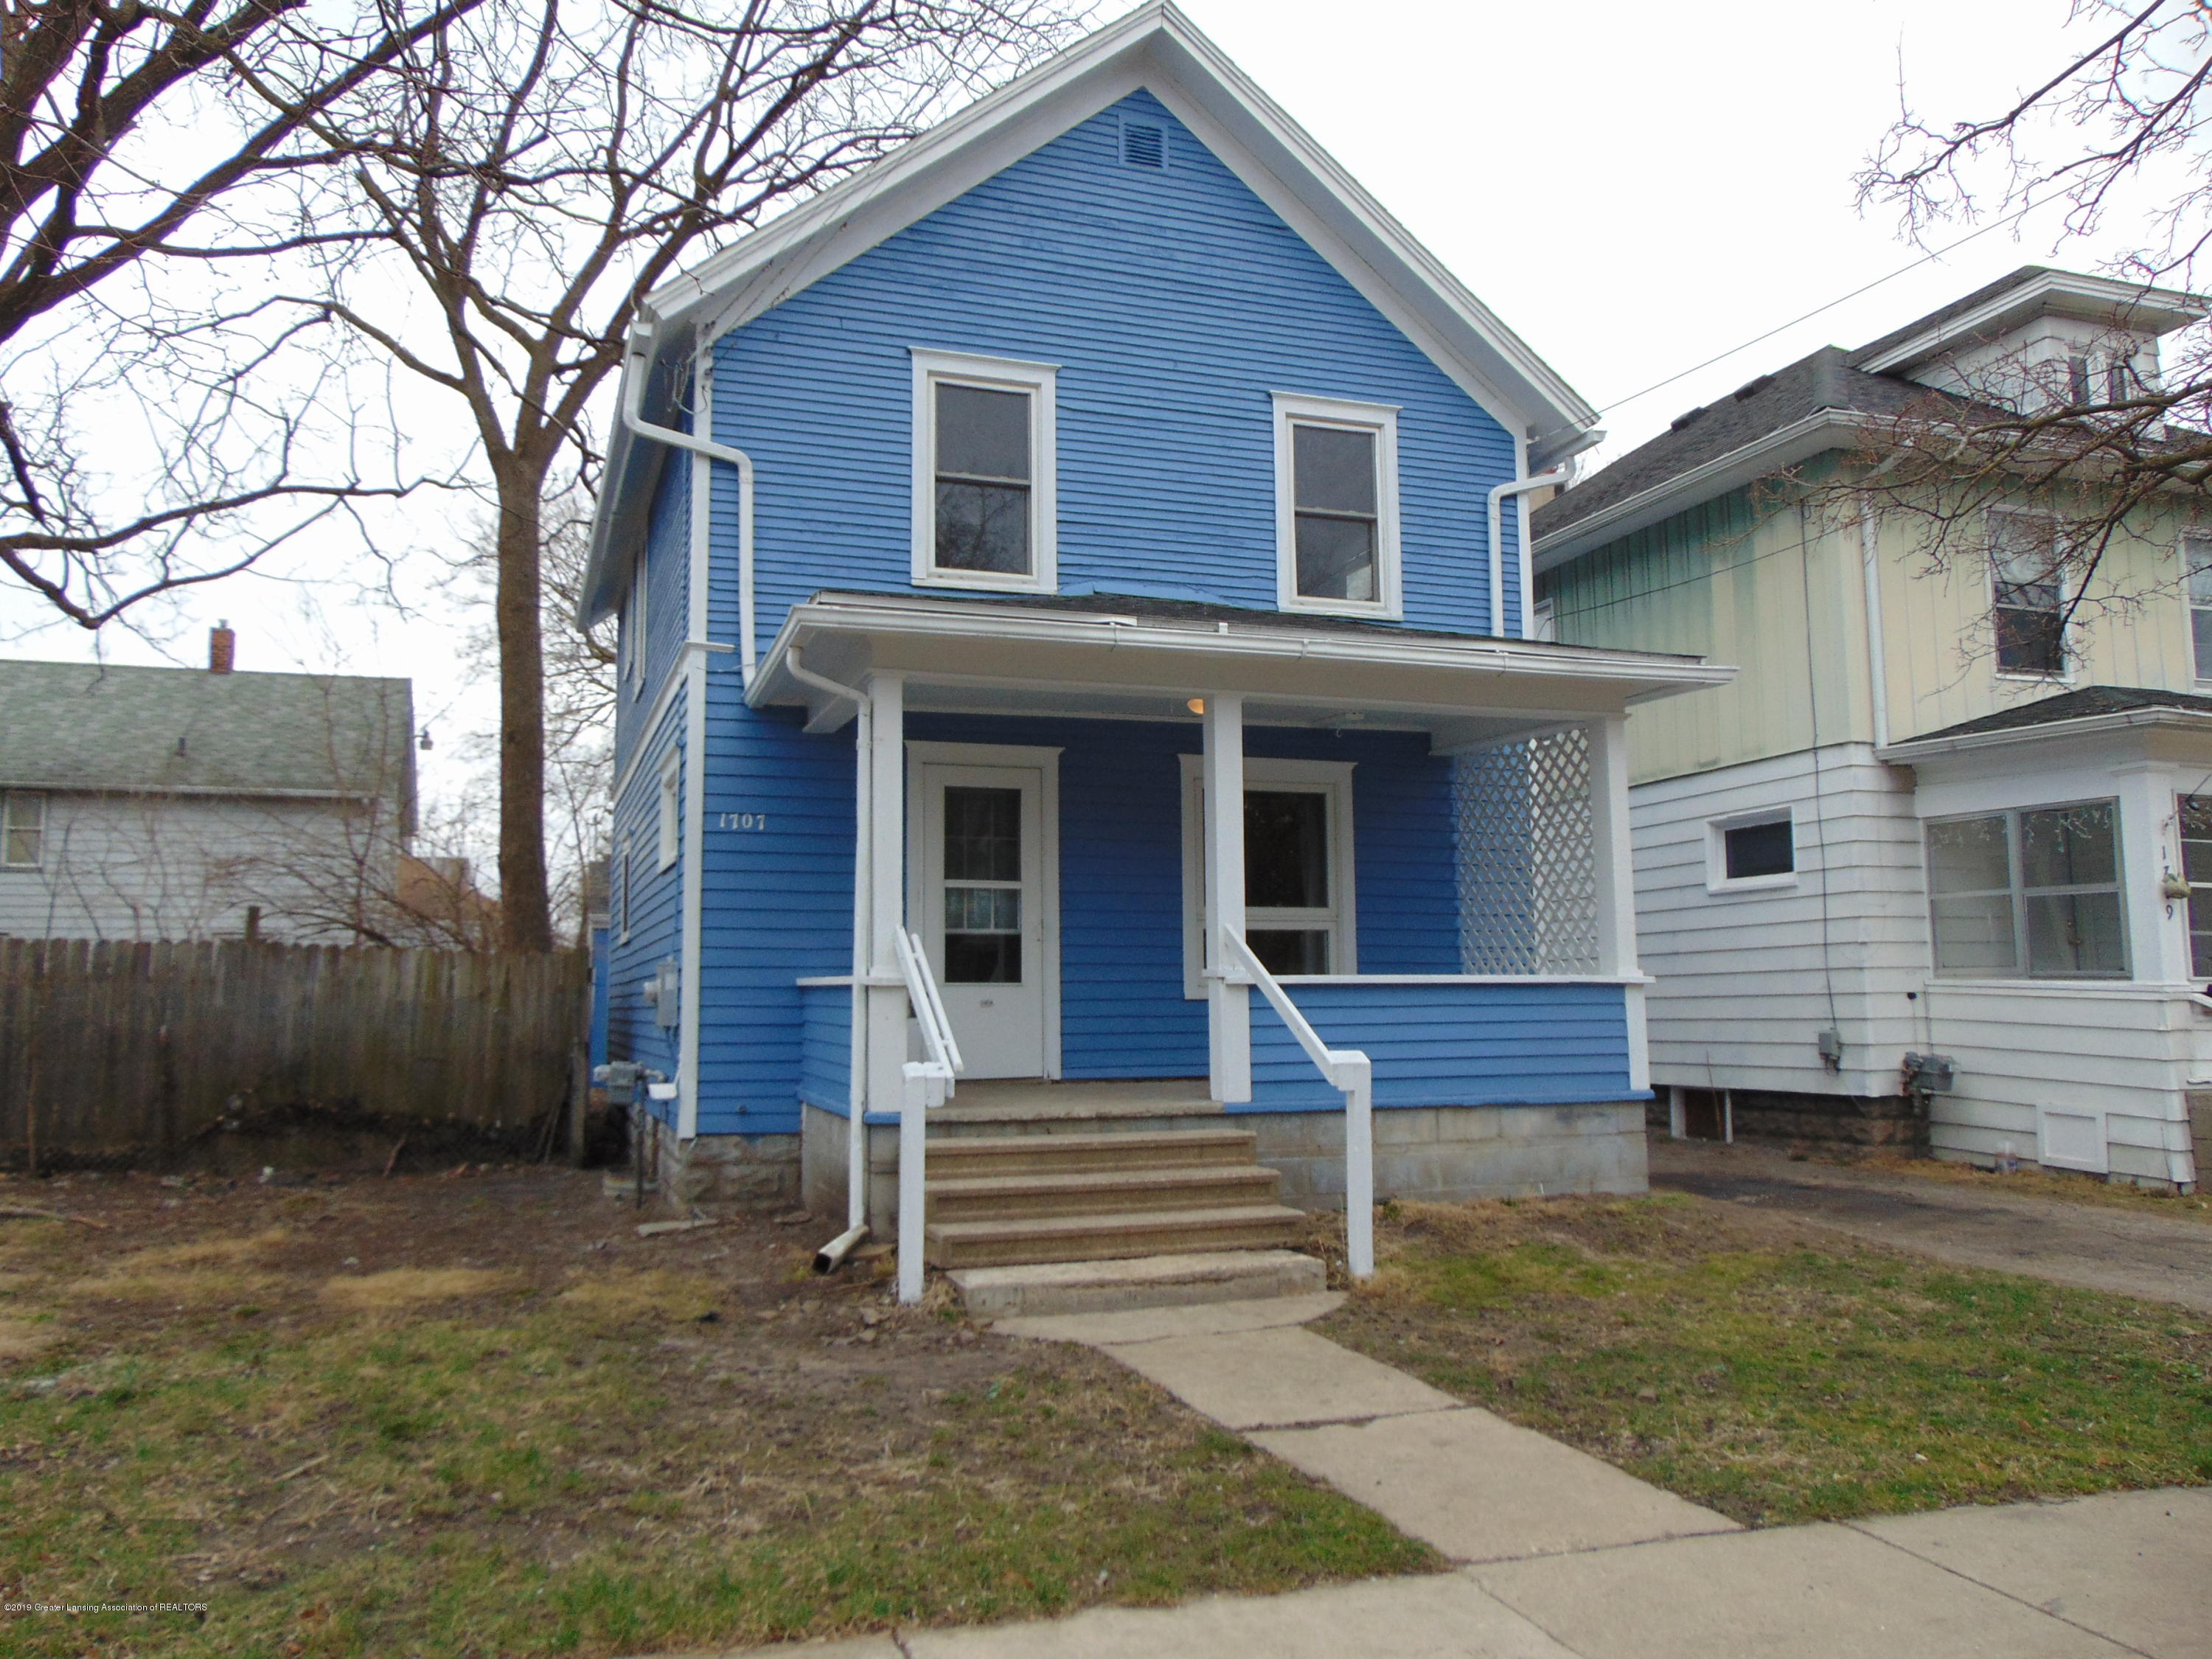 1707 Maplewood Ave - maplewood1 - 1